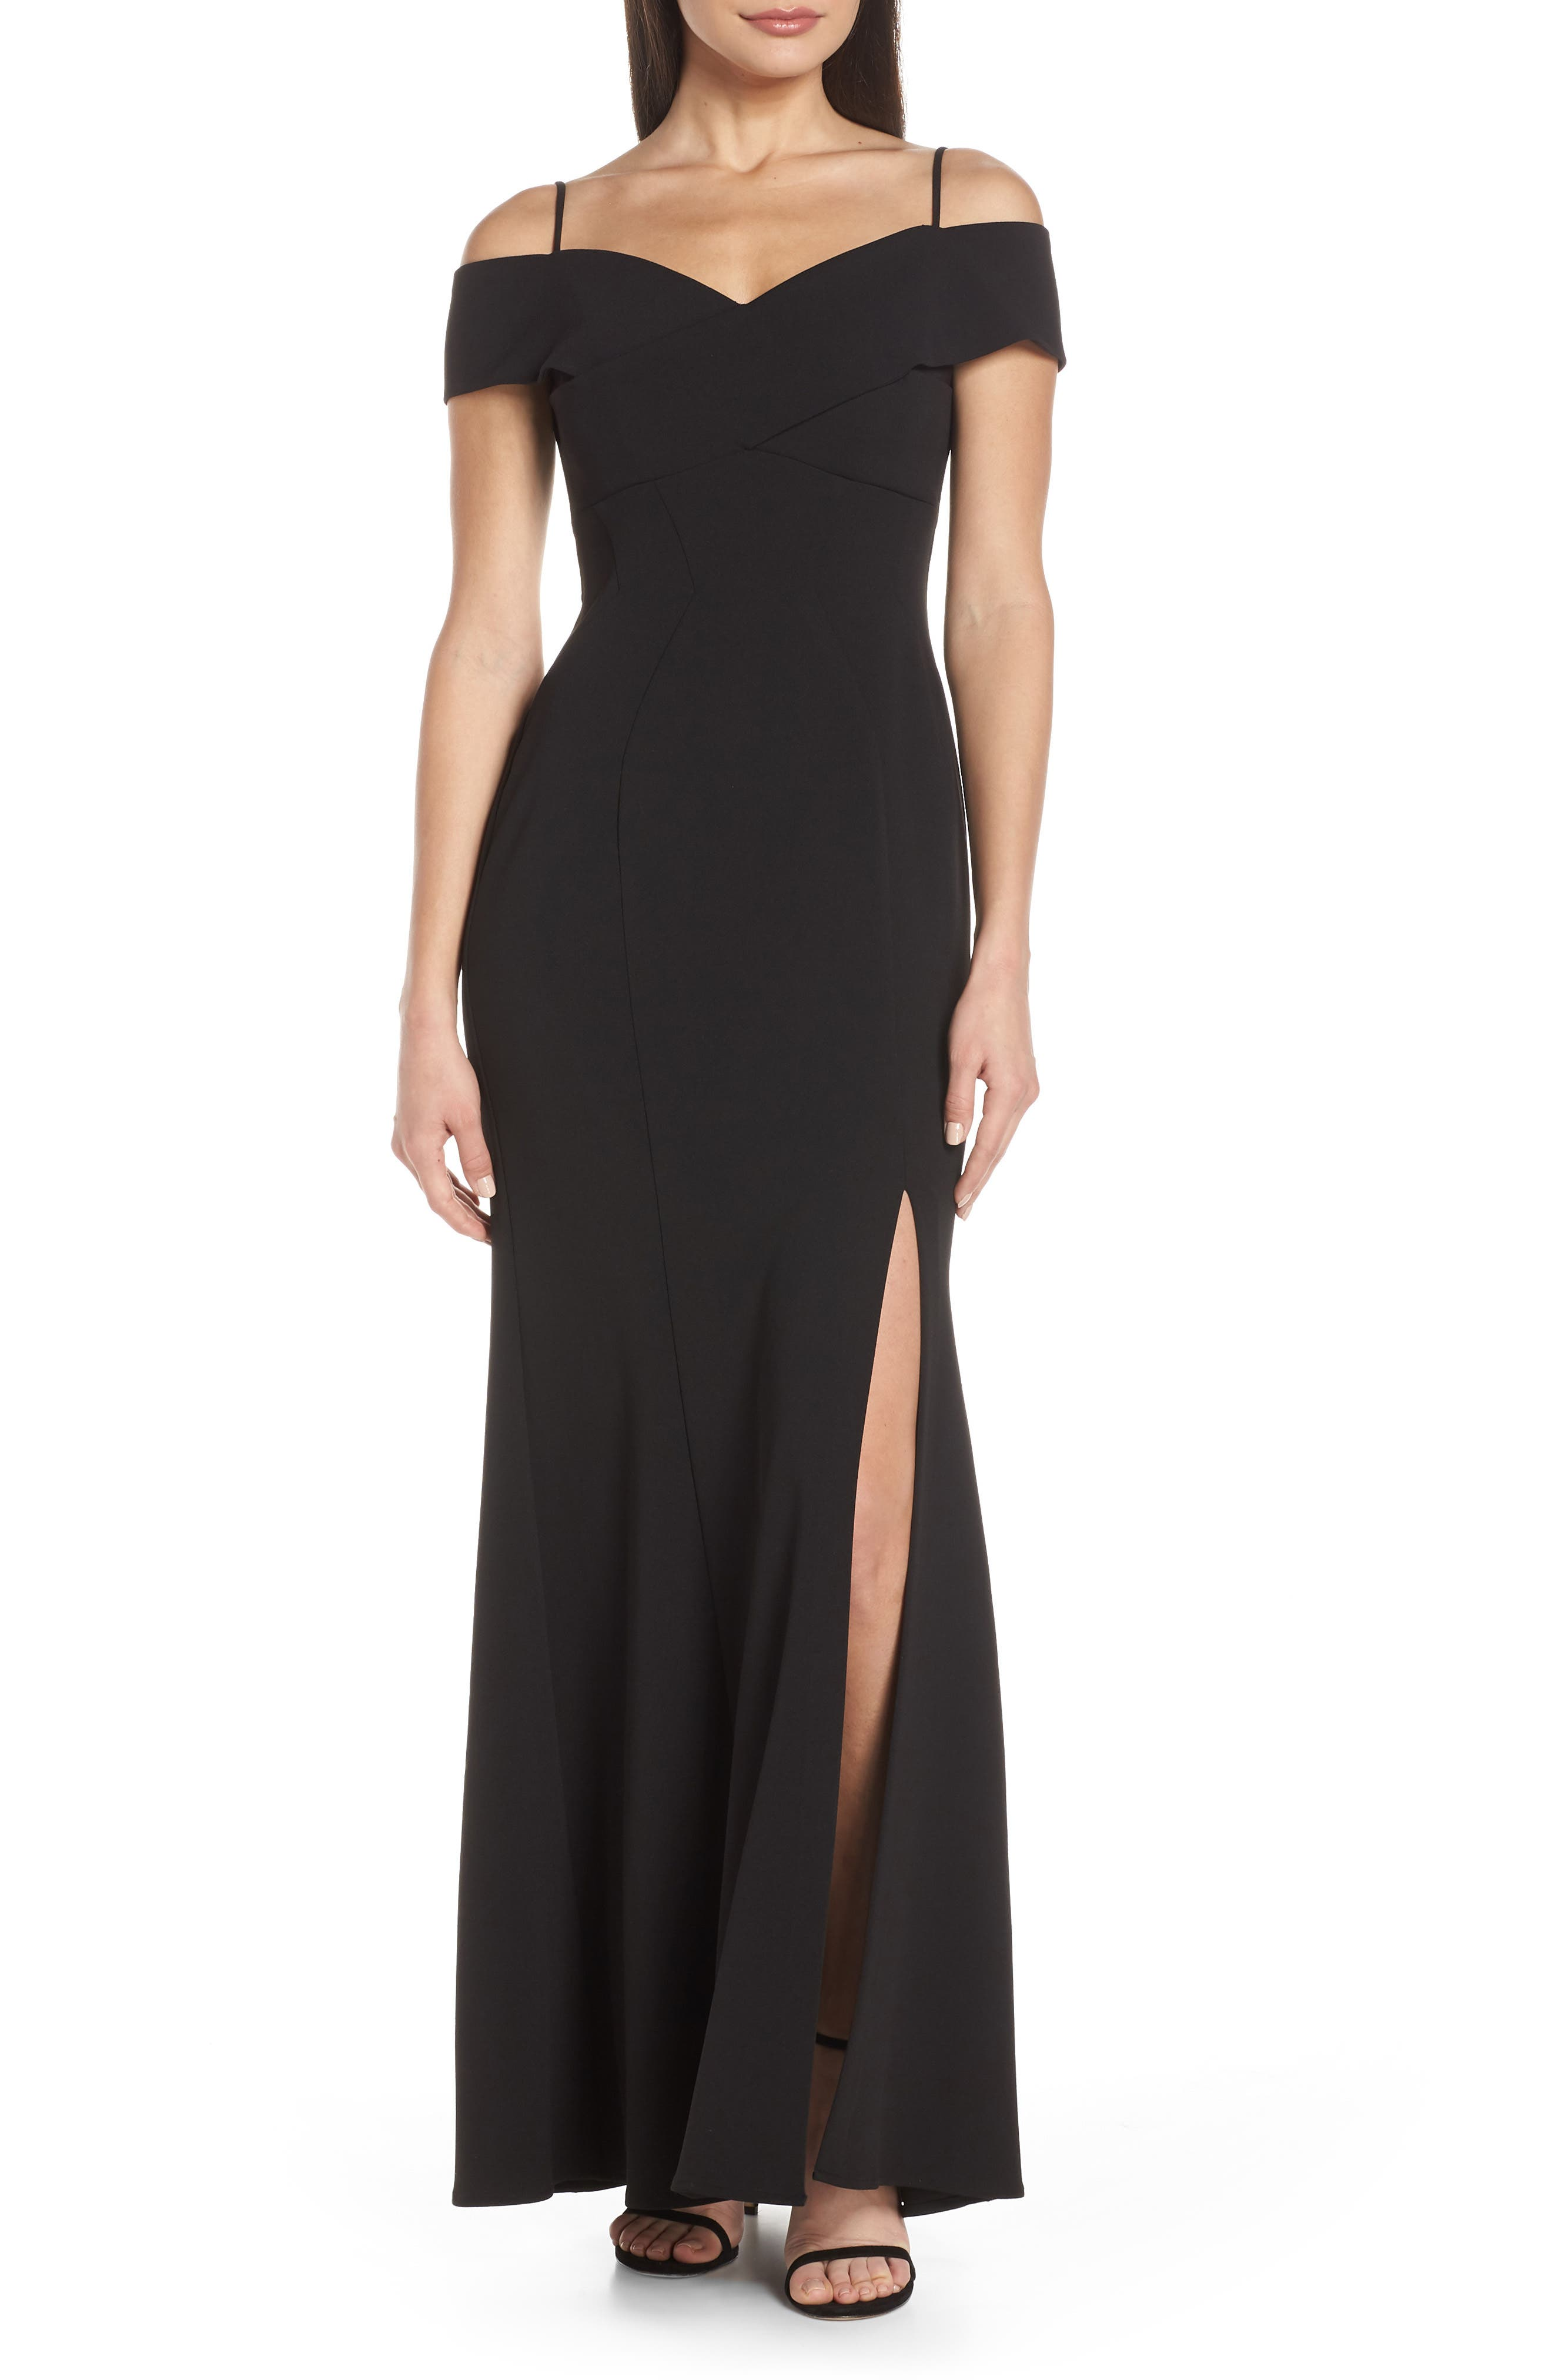 Morgan & Co. Portrait Collar Scuba Crepe Evening Dress, Black